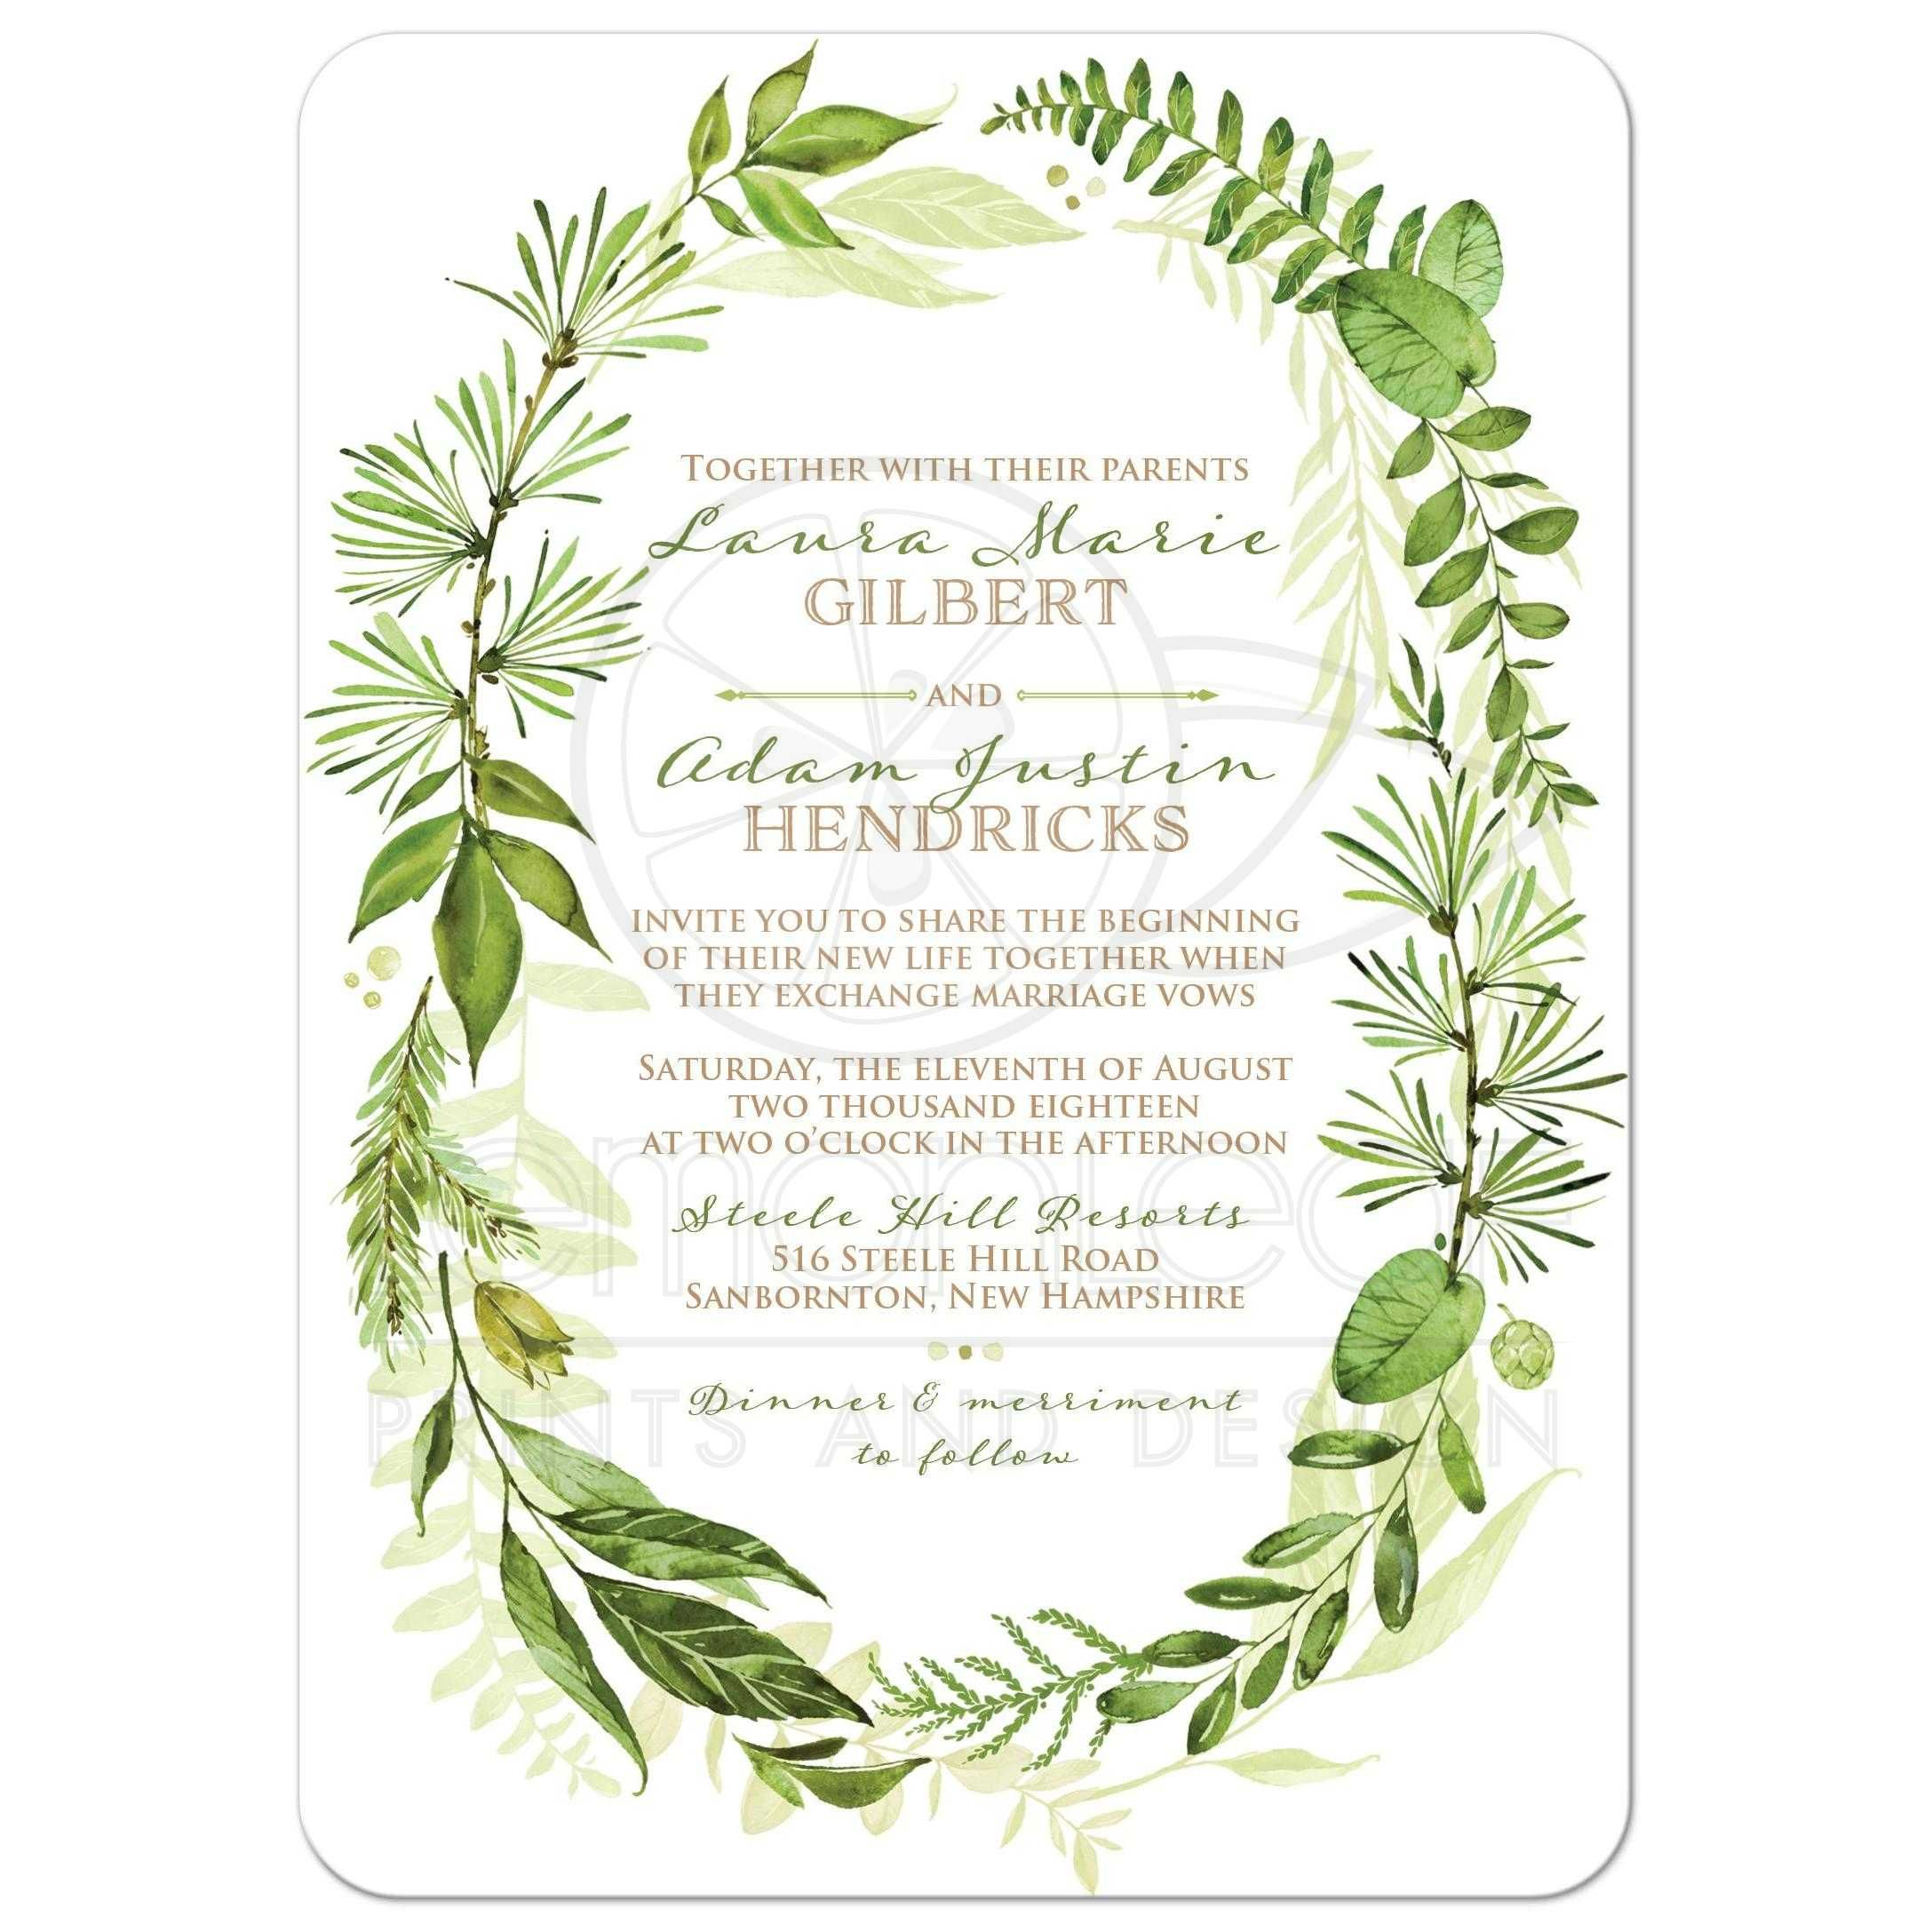 Greenery foliage wedding invitation watercolor leaves for Watercolor greenery